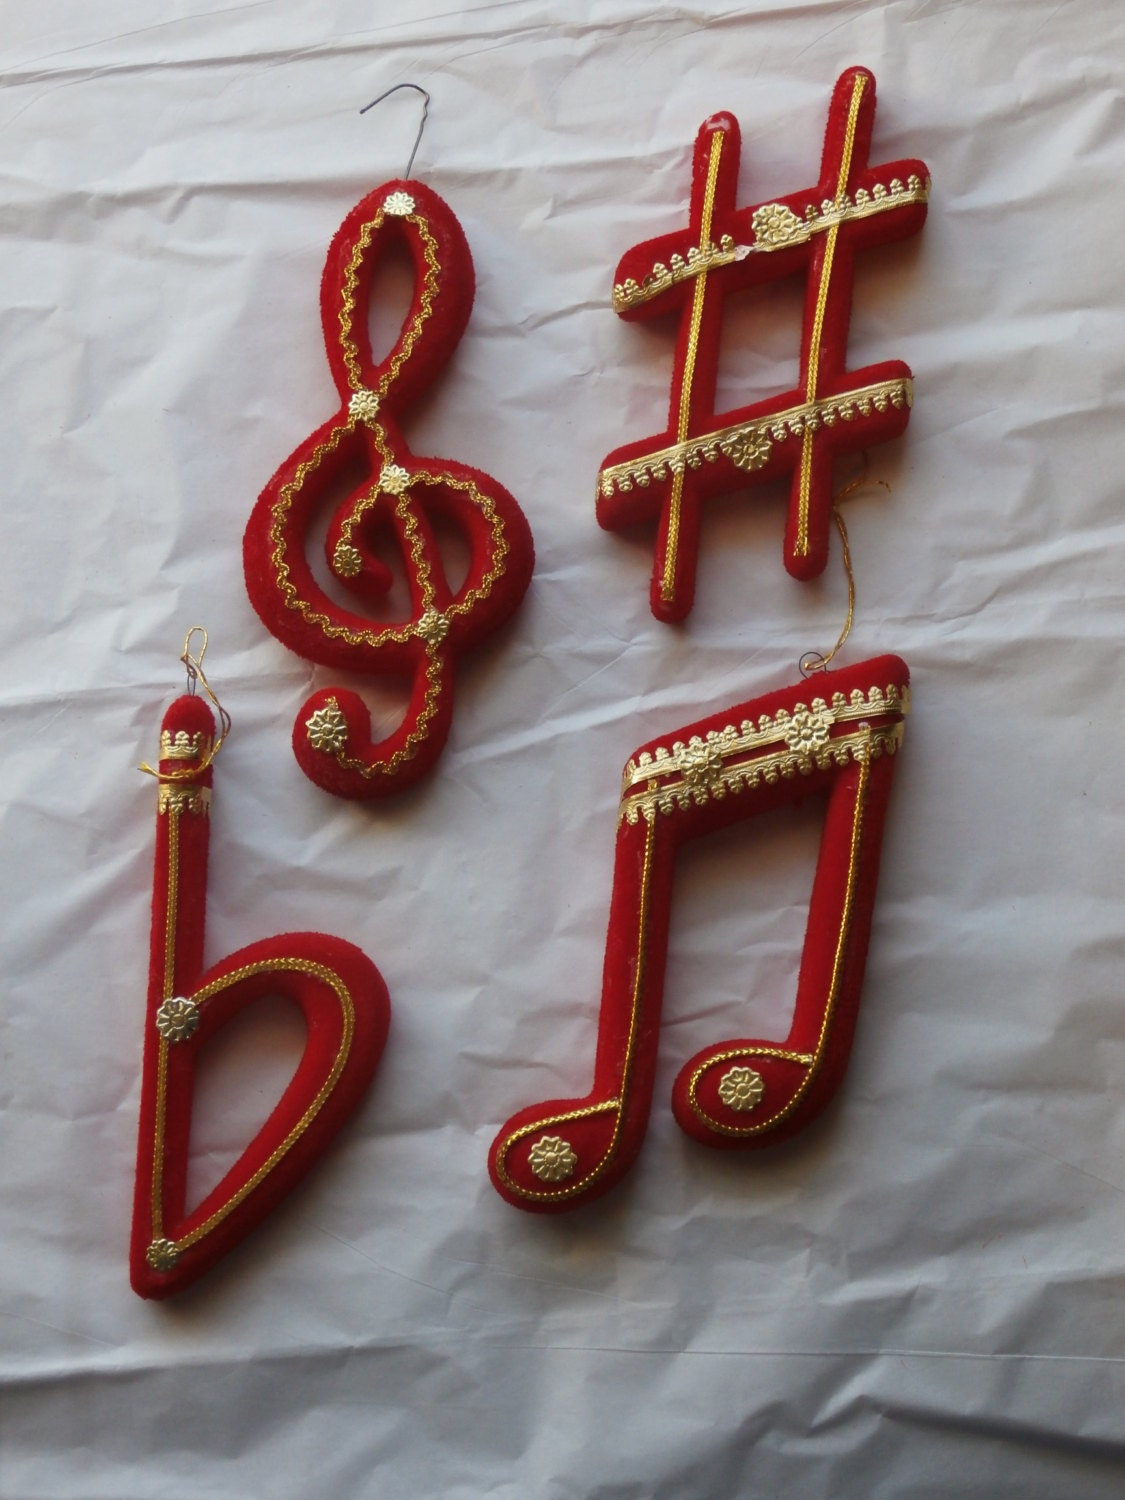 4 Vintage Flocked Christmas Ornaments Musical Notes with Gold